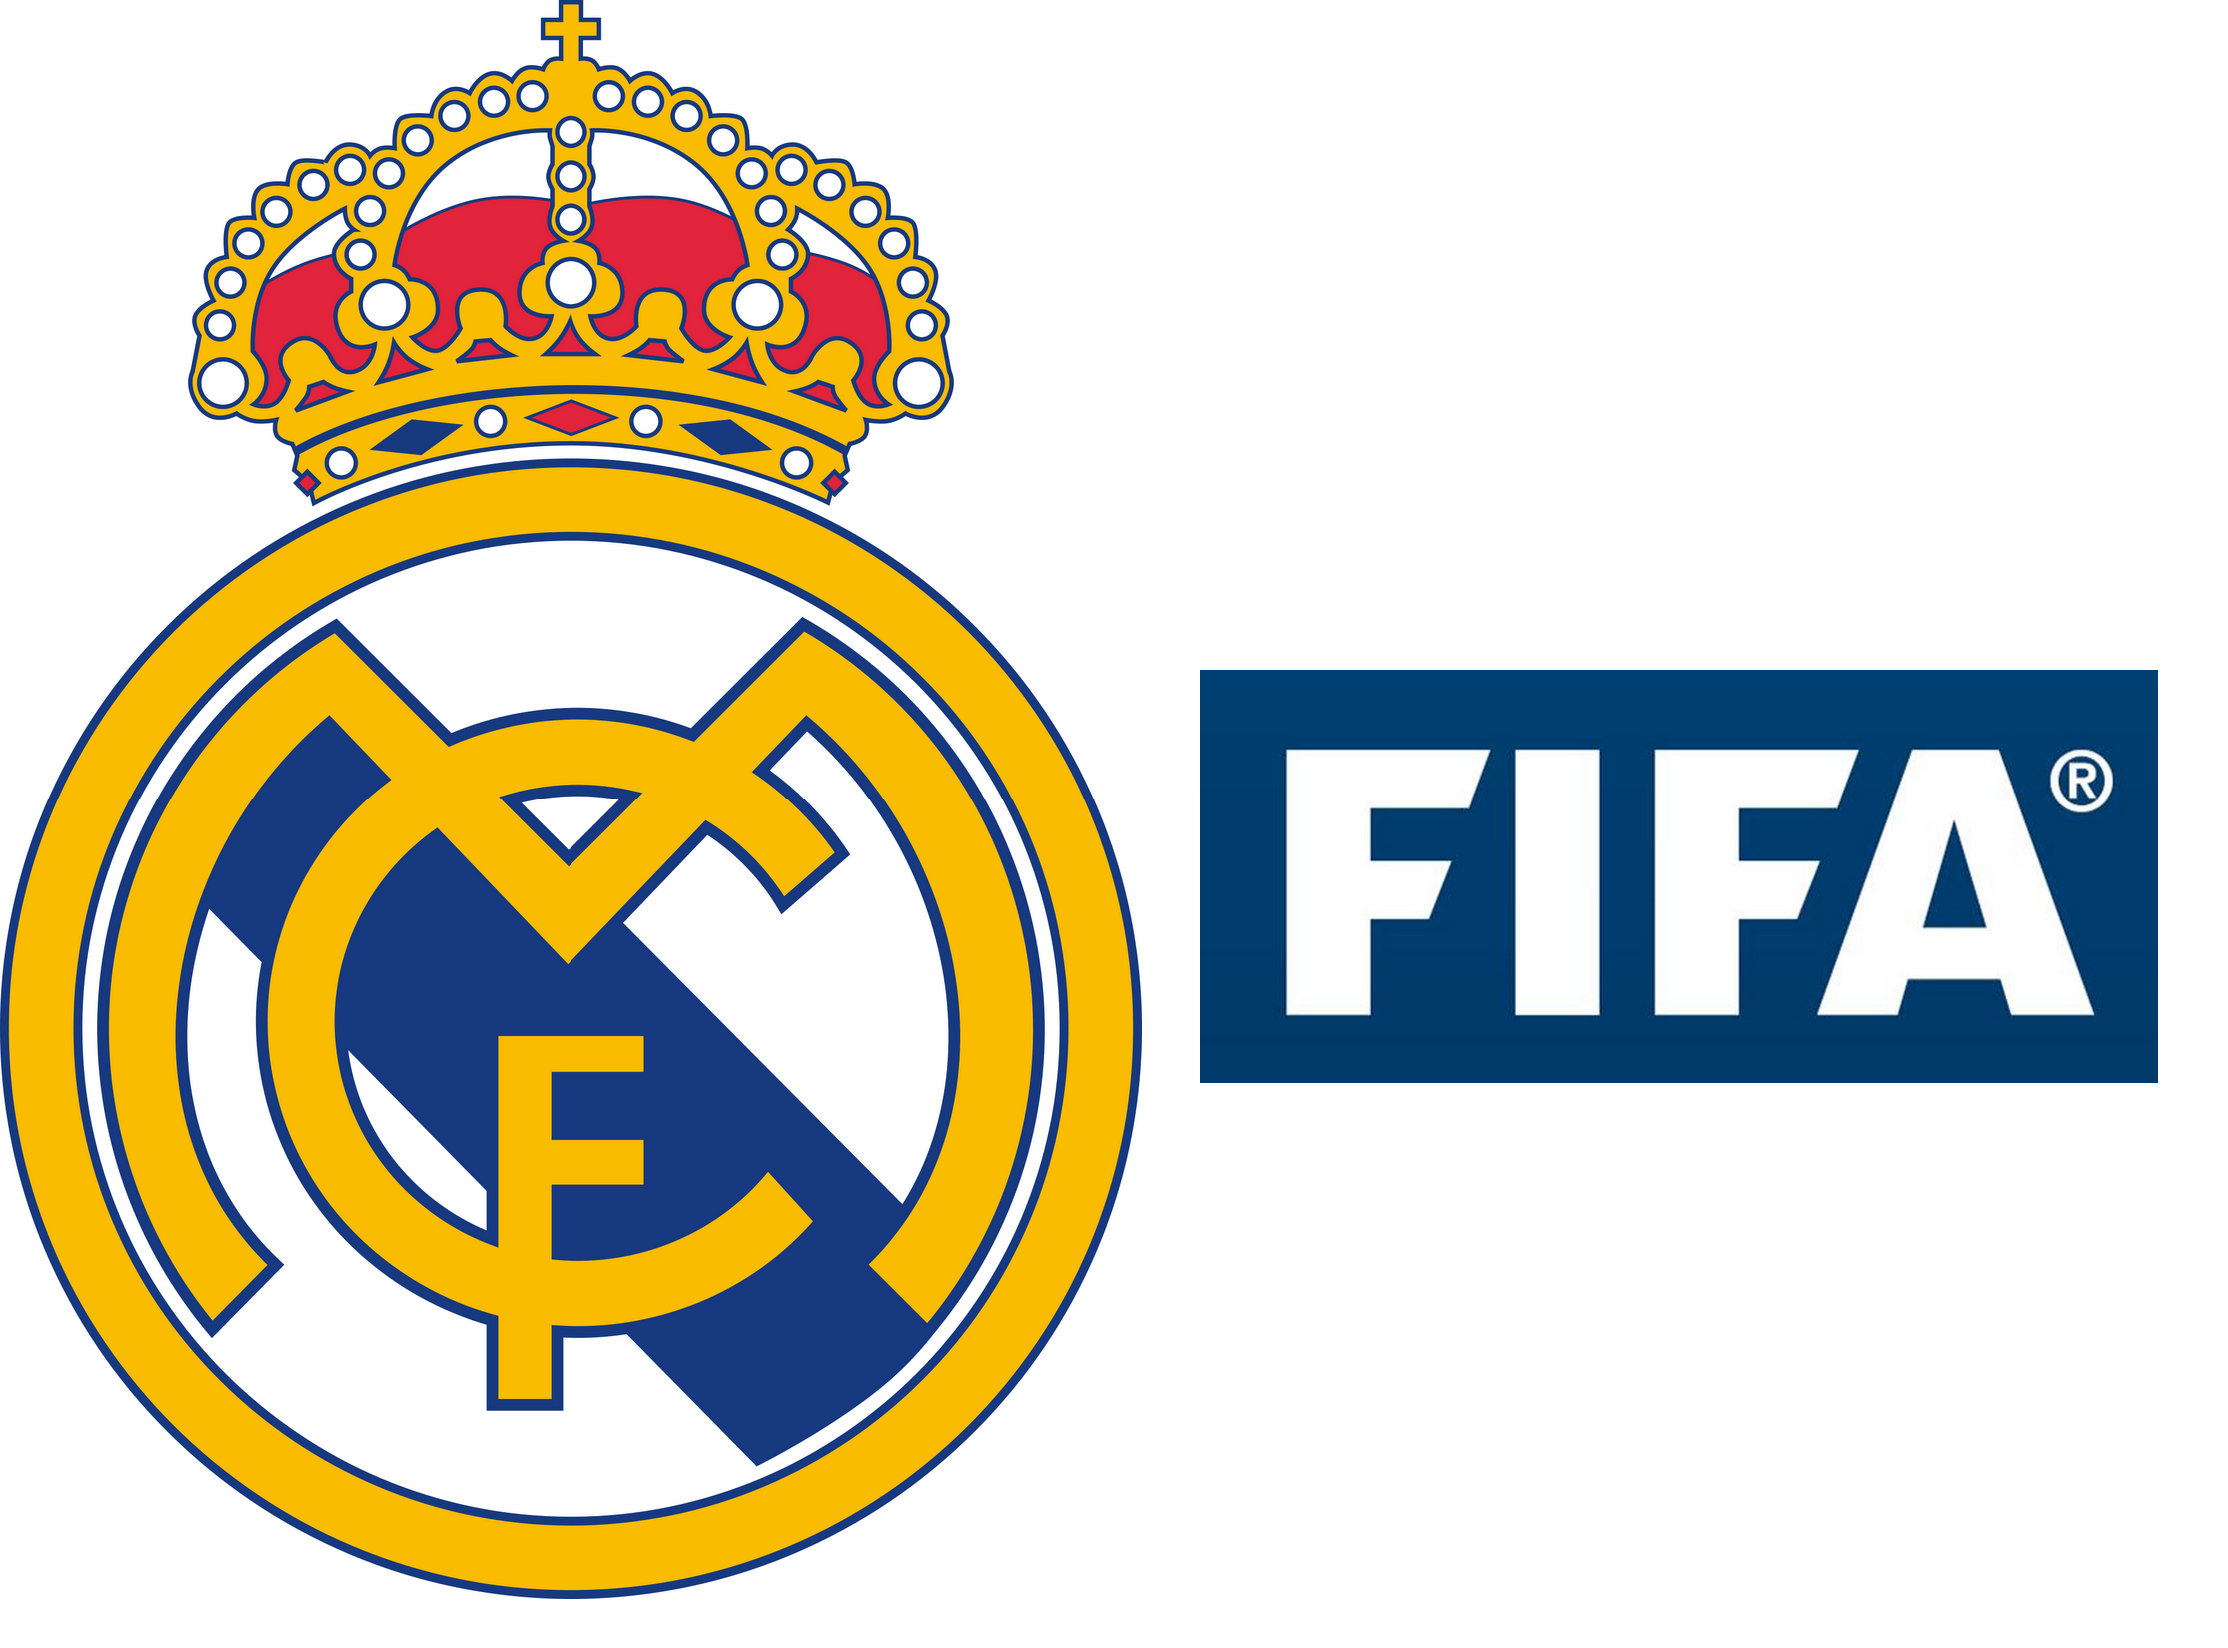 Escudo real madrid png 2015 5 » PNG Image.